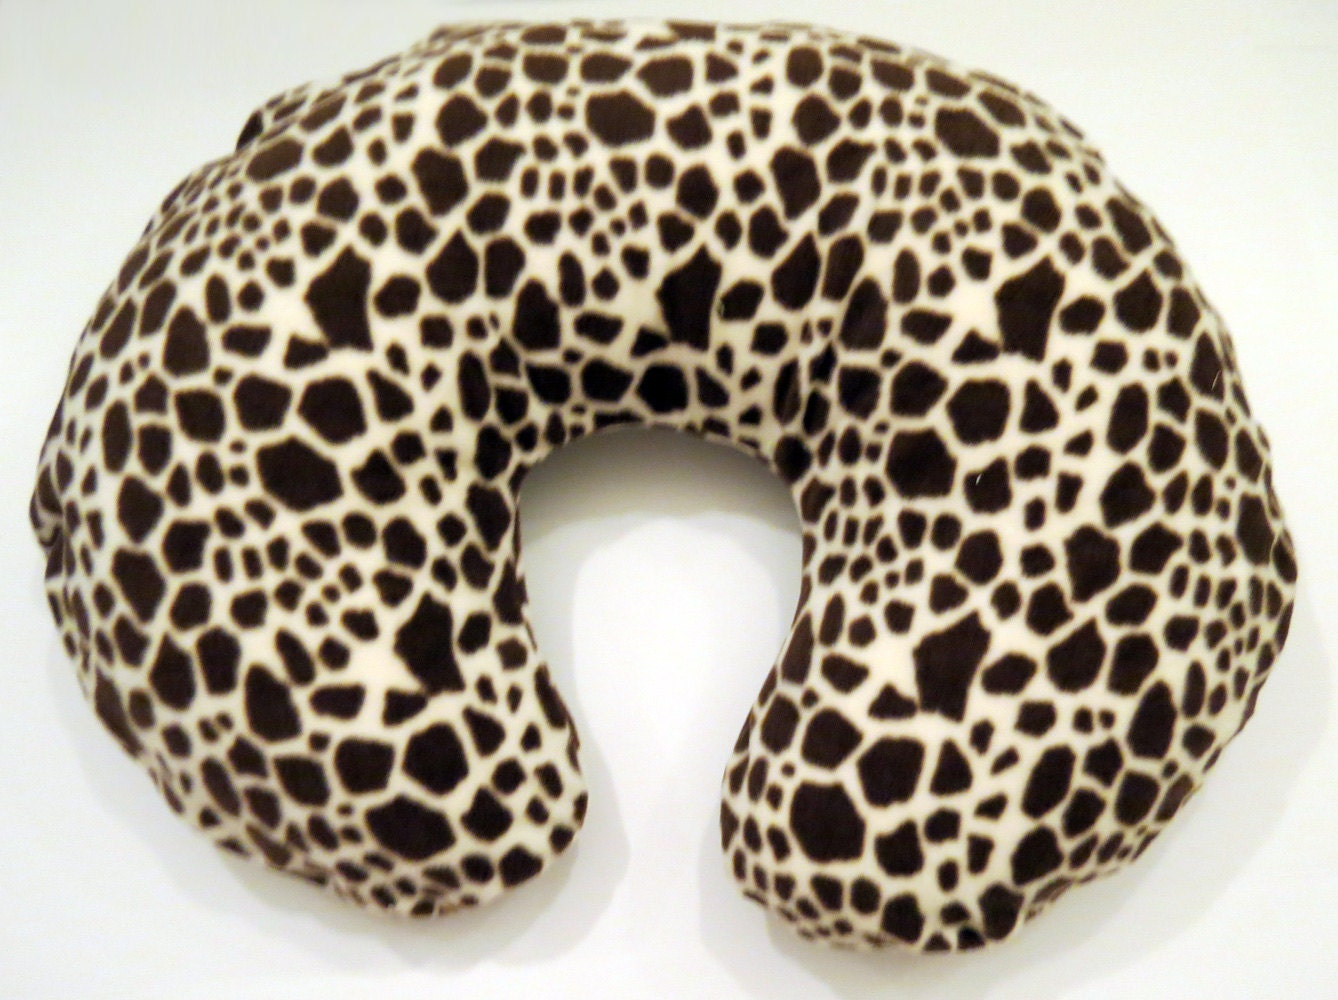 Animal Nursing Pillow : Boppy Nursing Pillow Cover: Giraffe Wild Animal Print